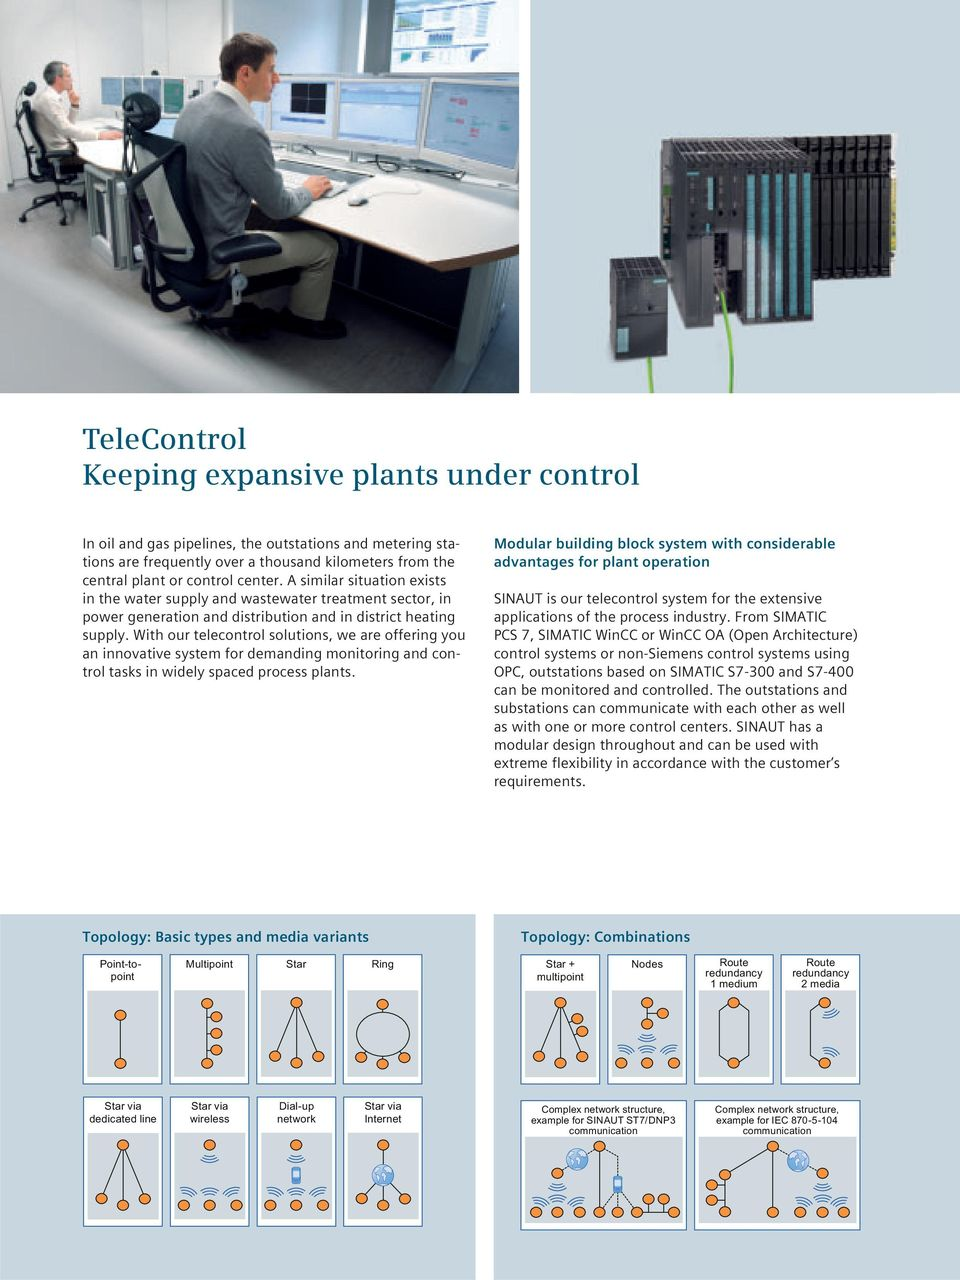 With our telecontrol solutions, we are offering you an innovative system for demanding monitoring and control tasks in widely spaced process plants.